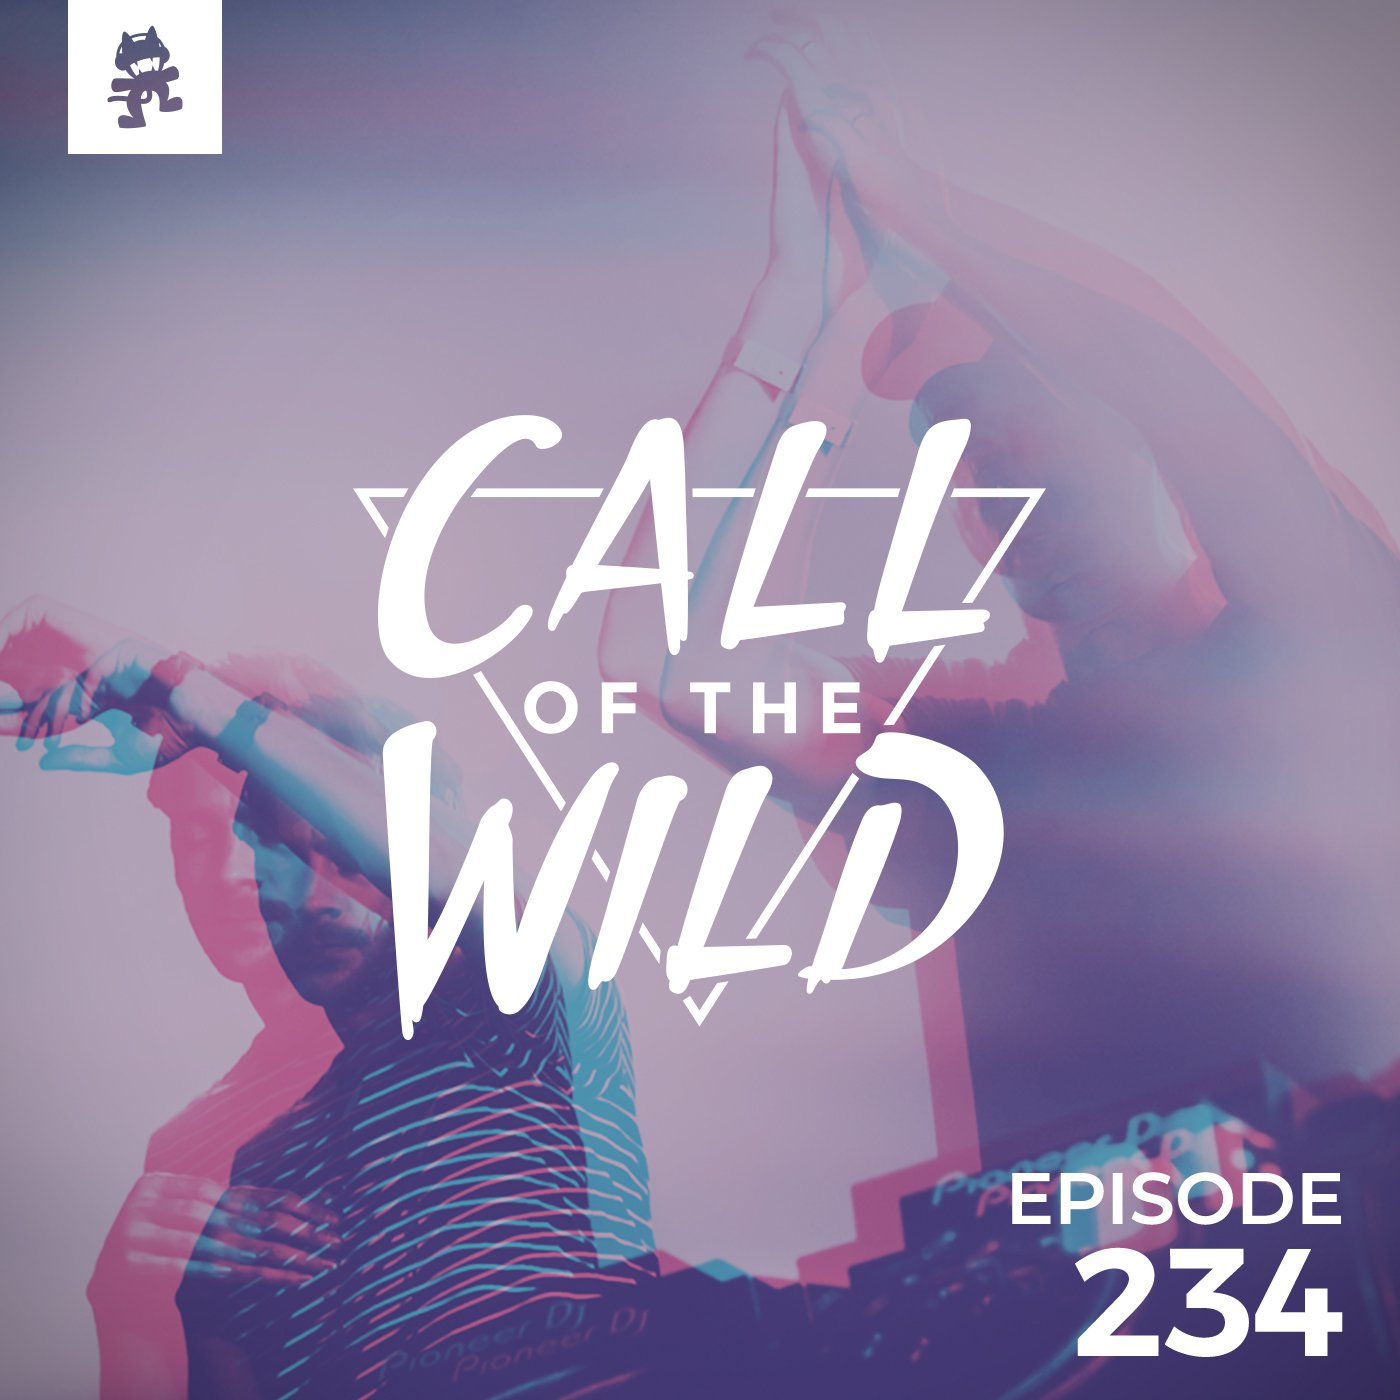 Monstercat: Call of the Wild - Episode 234